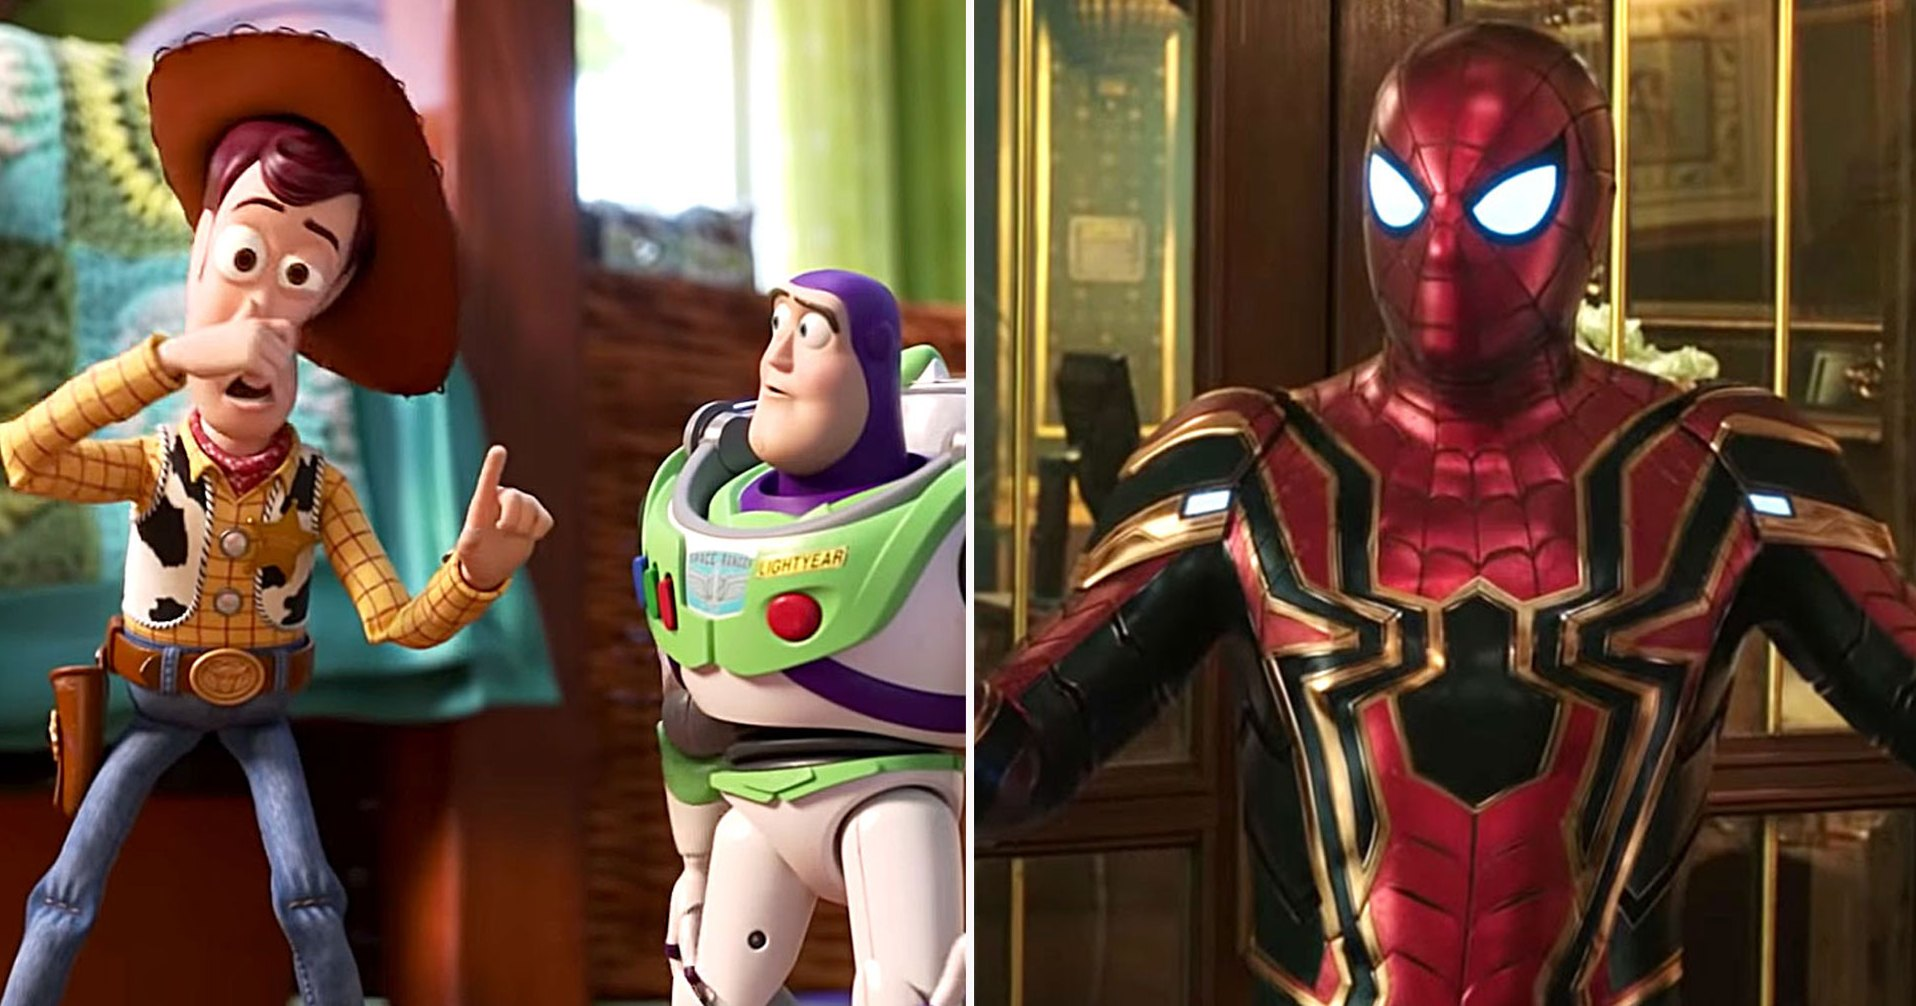 Summer Movie Preview: Peek Inside the Flicks Heating Up the Big Screen